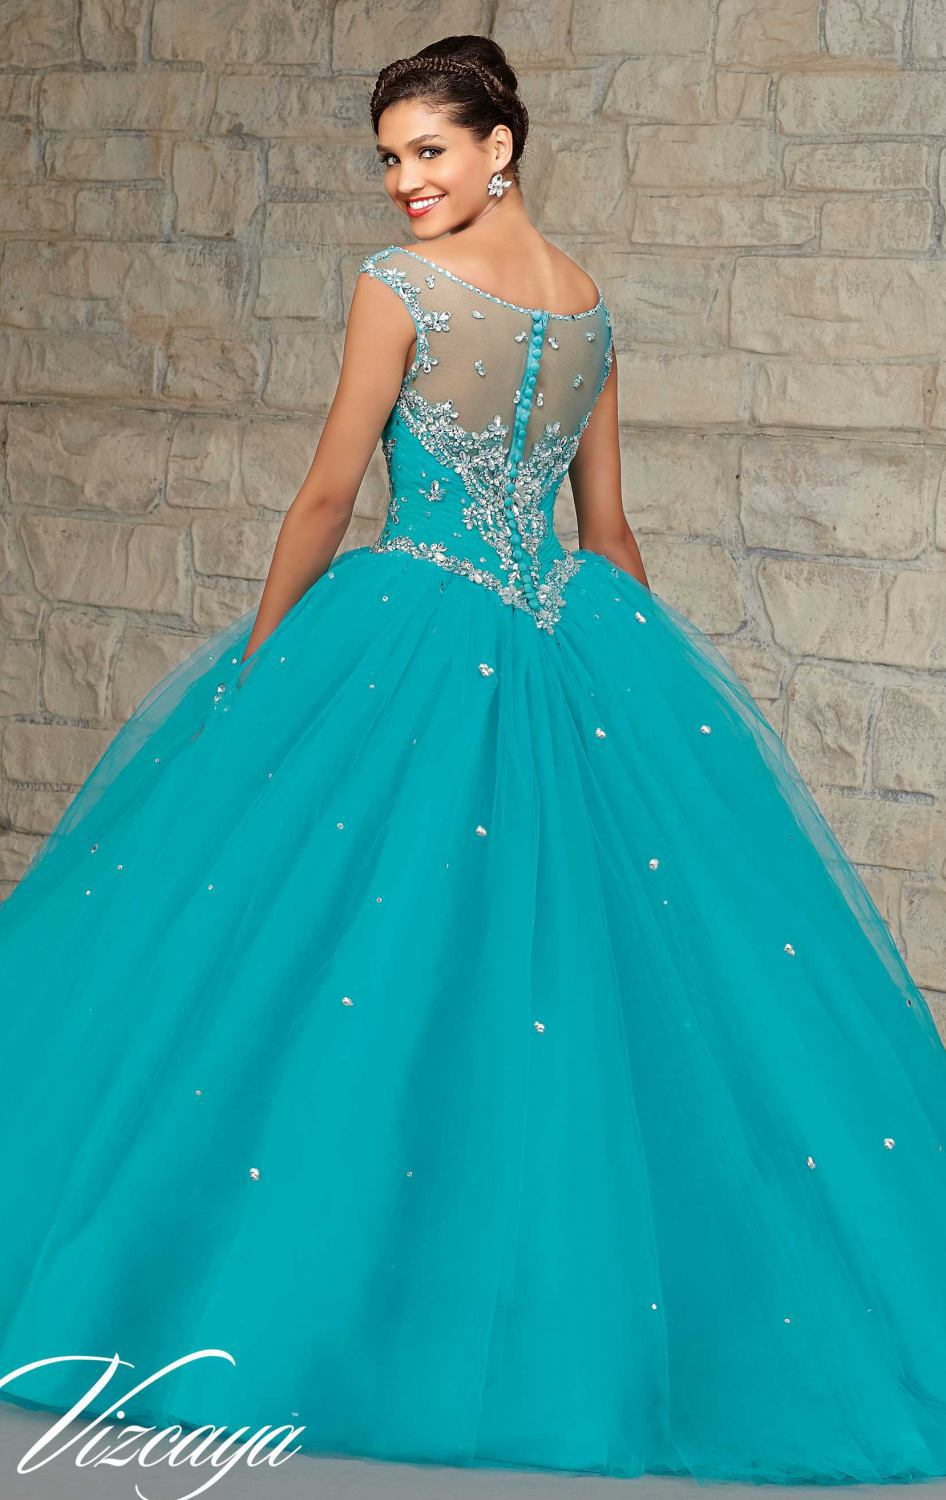 Plus Size Prom Ball Gowns | Dress images